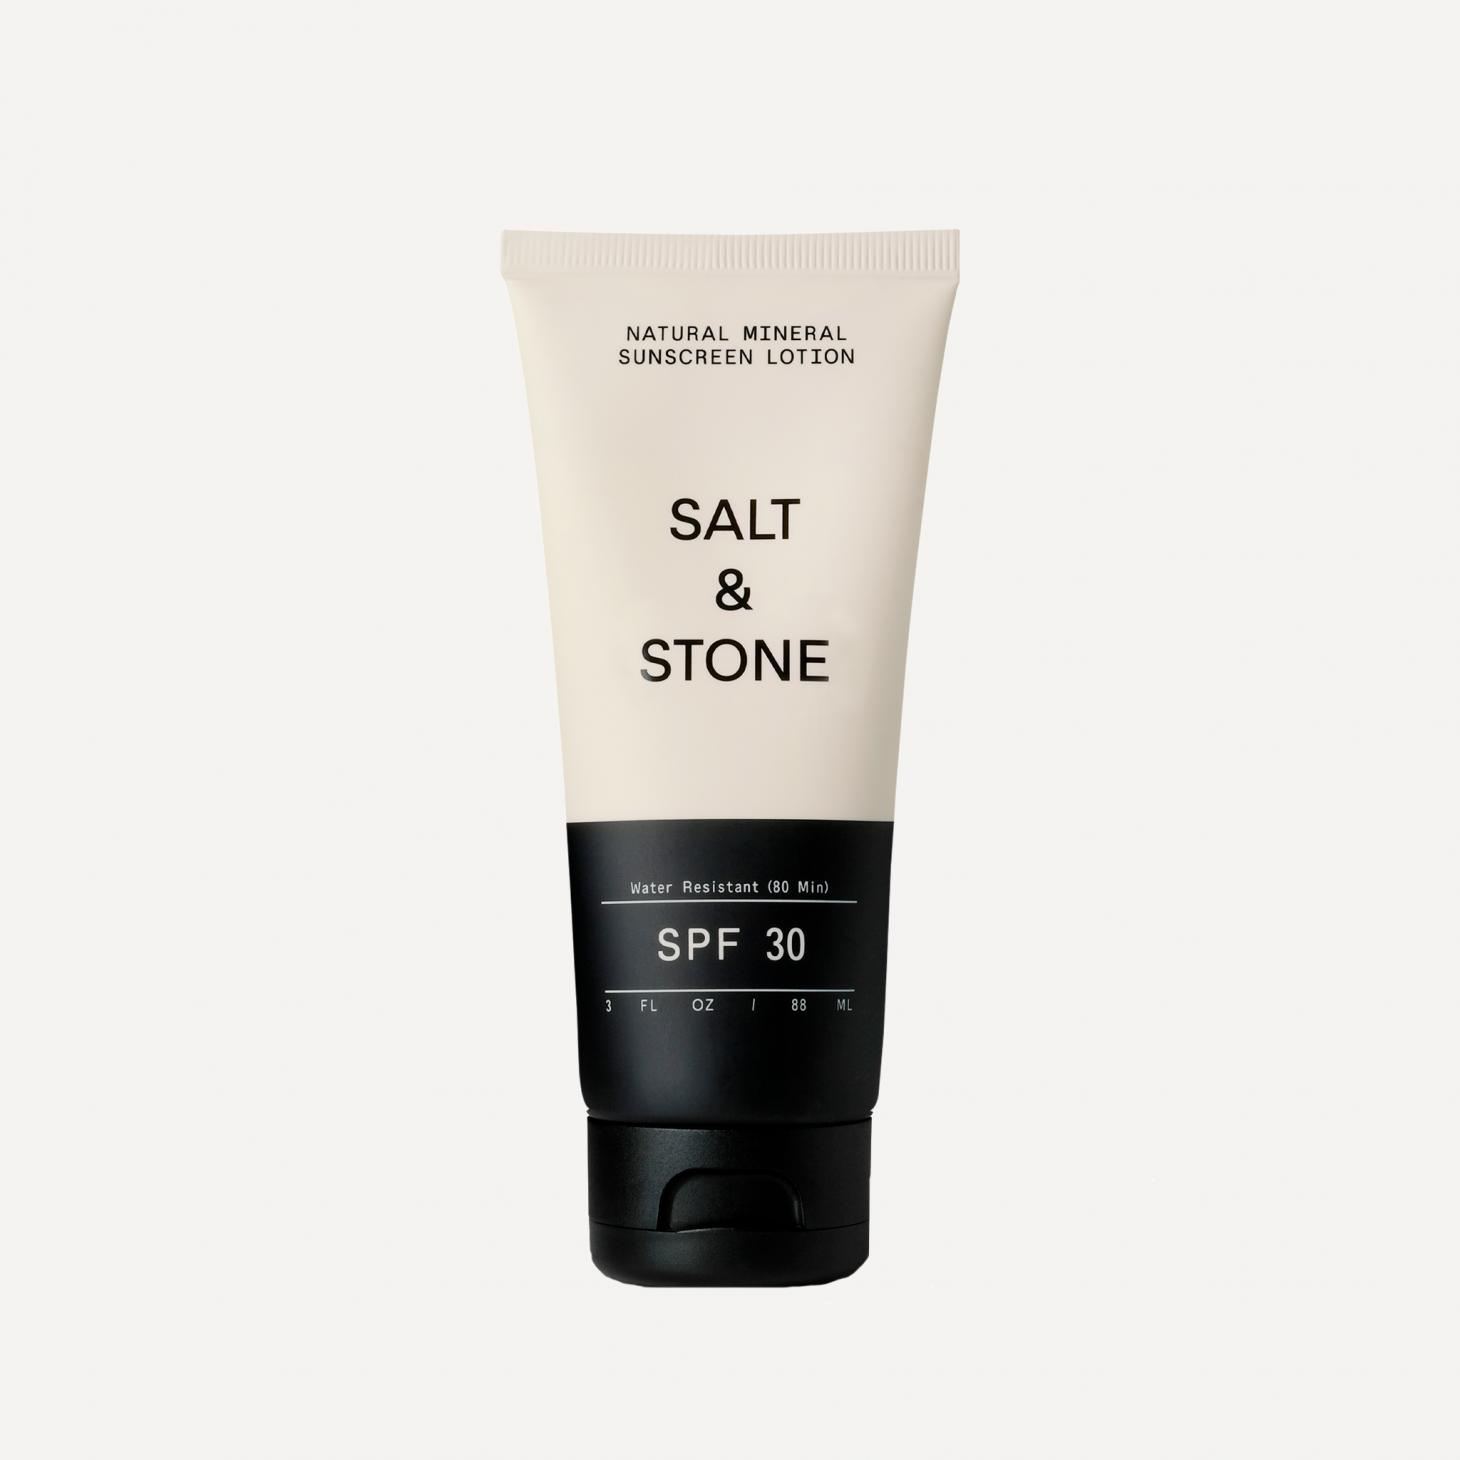 salt and stone organic sunscreen in black and white bottle